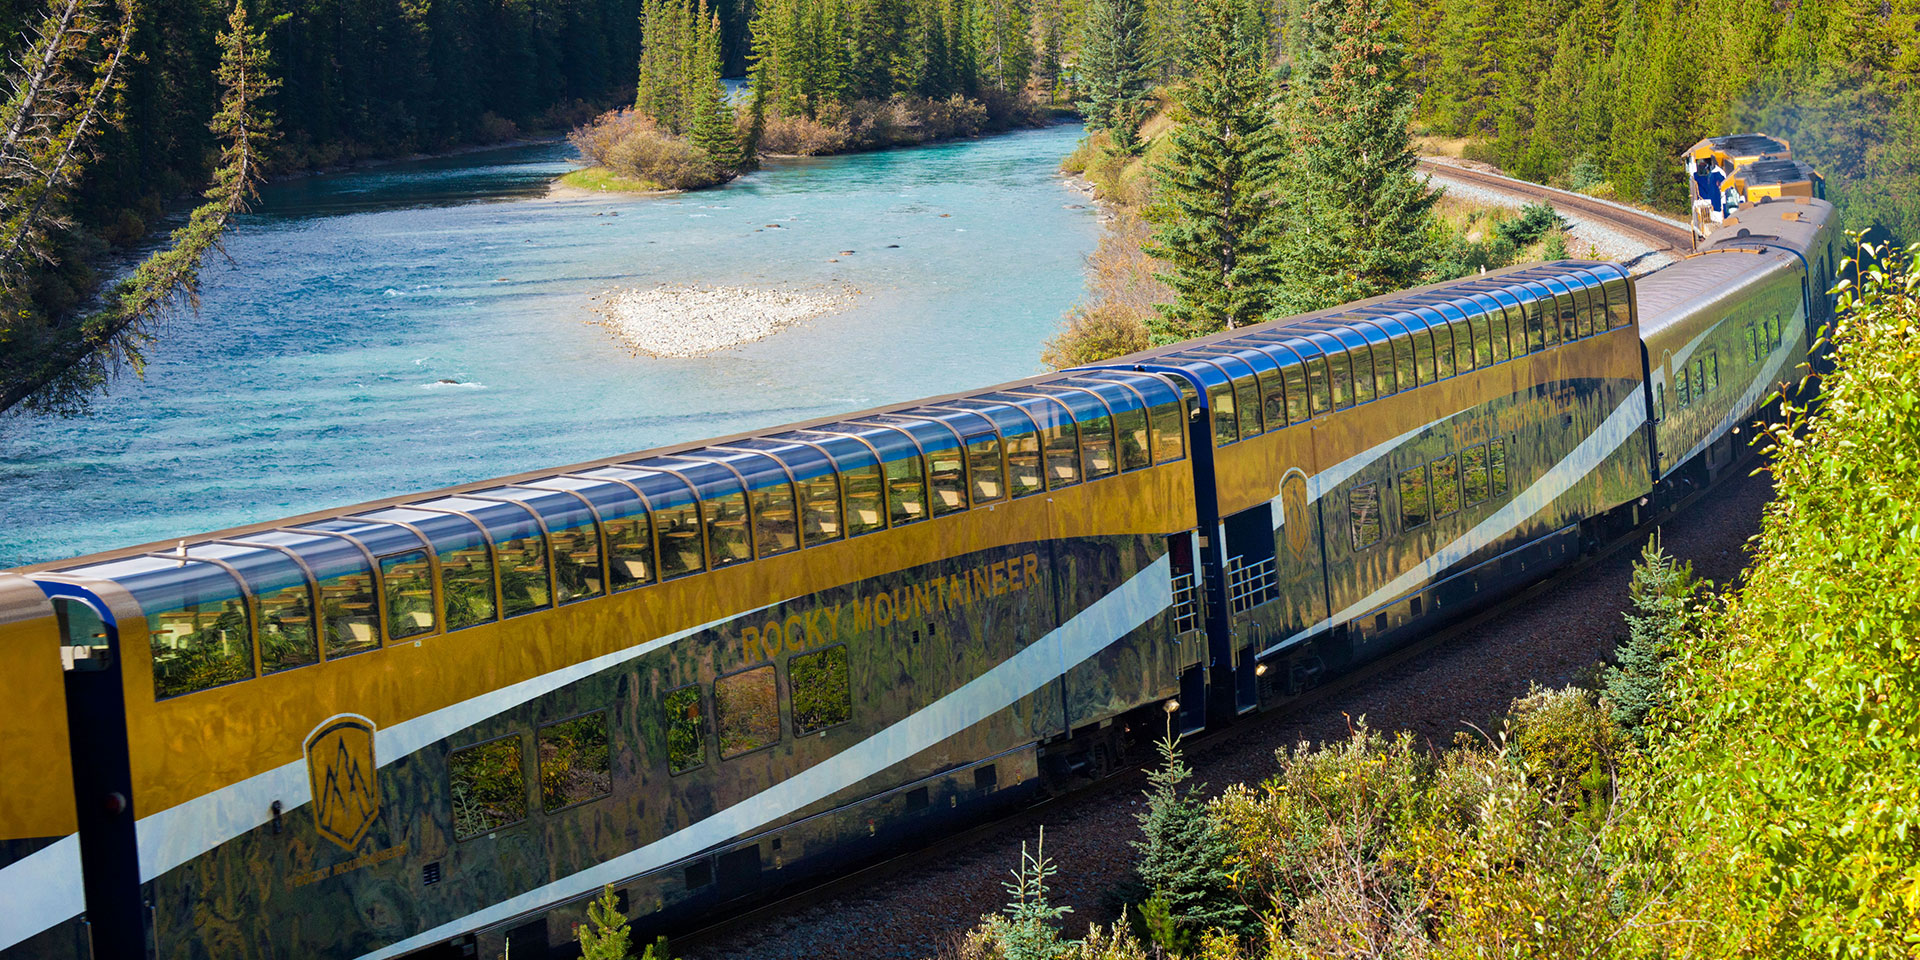 Canada by Rail: 5 Great Canadian Train Adventures